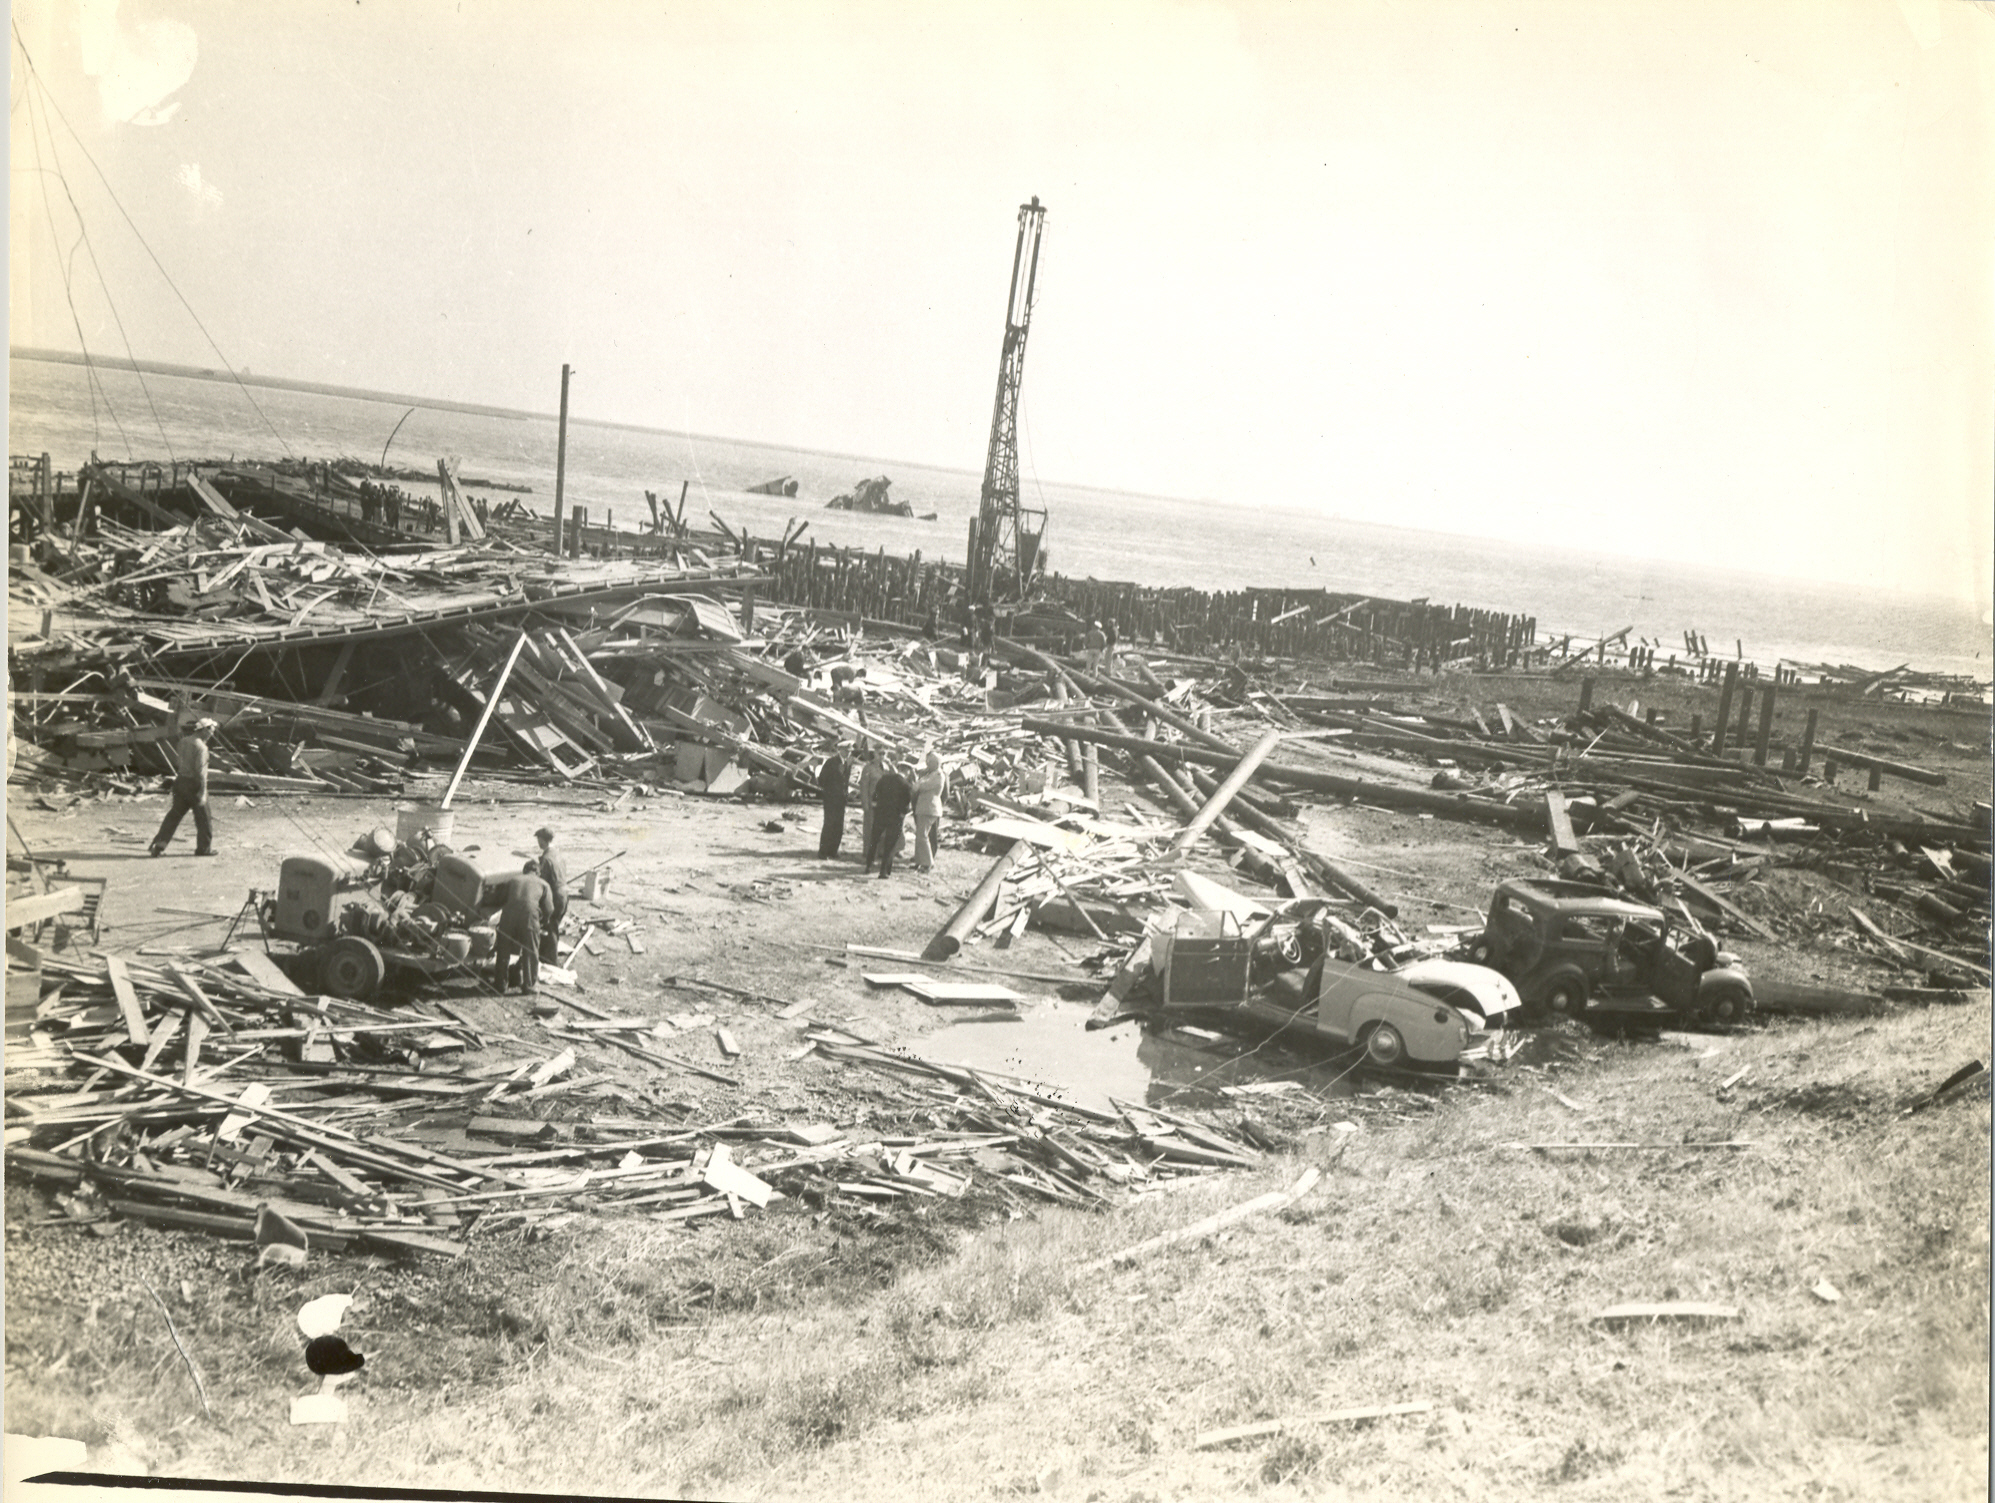 Aftermath of the explosion